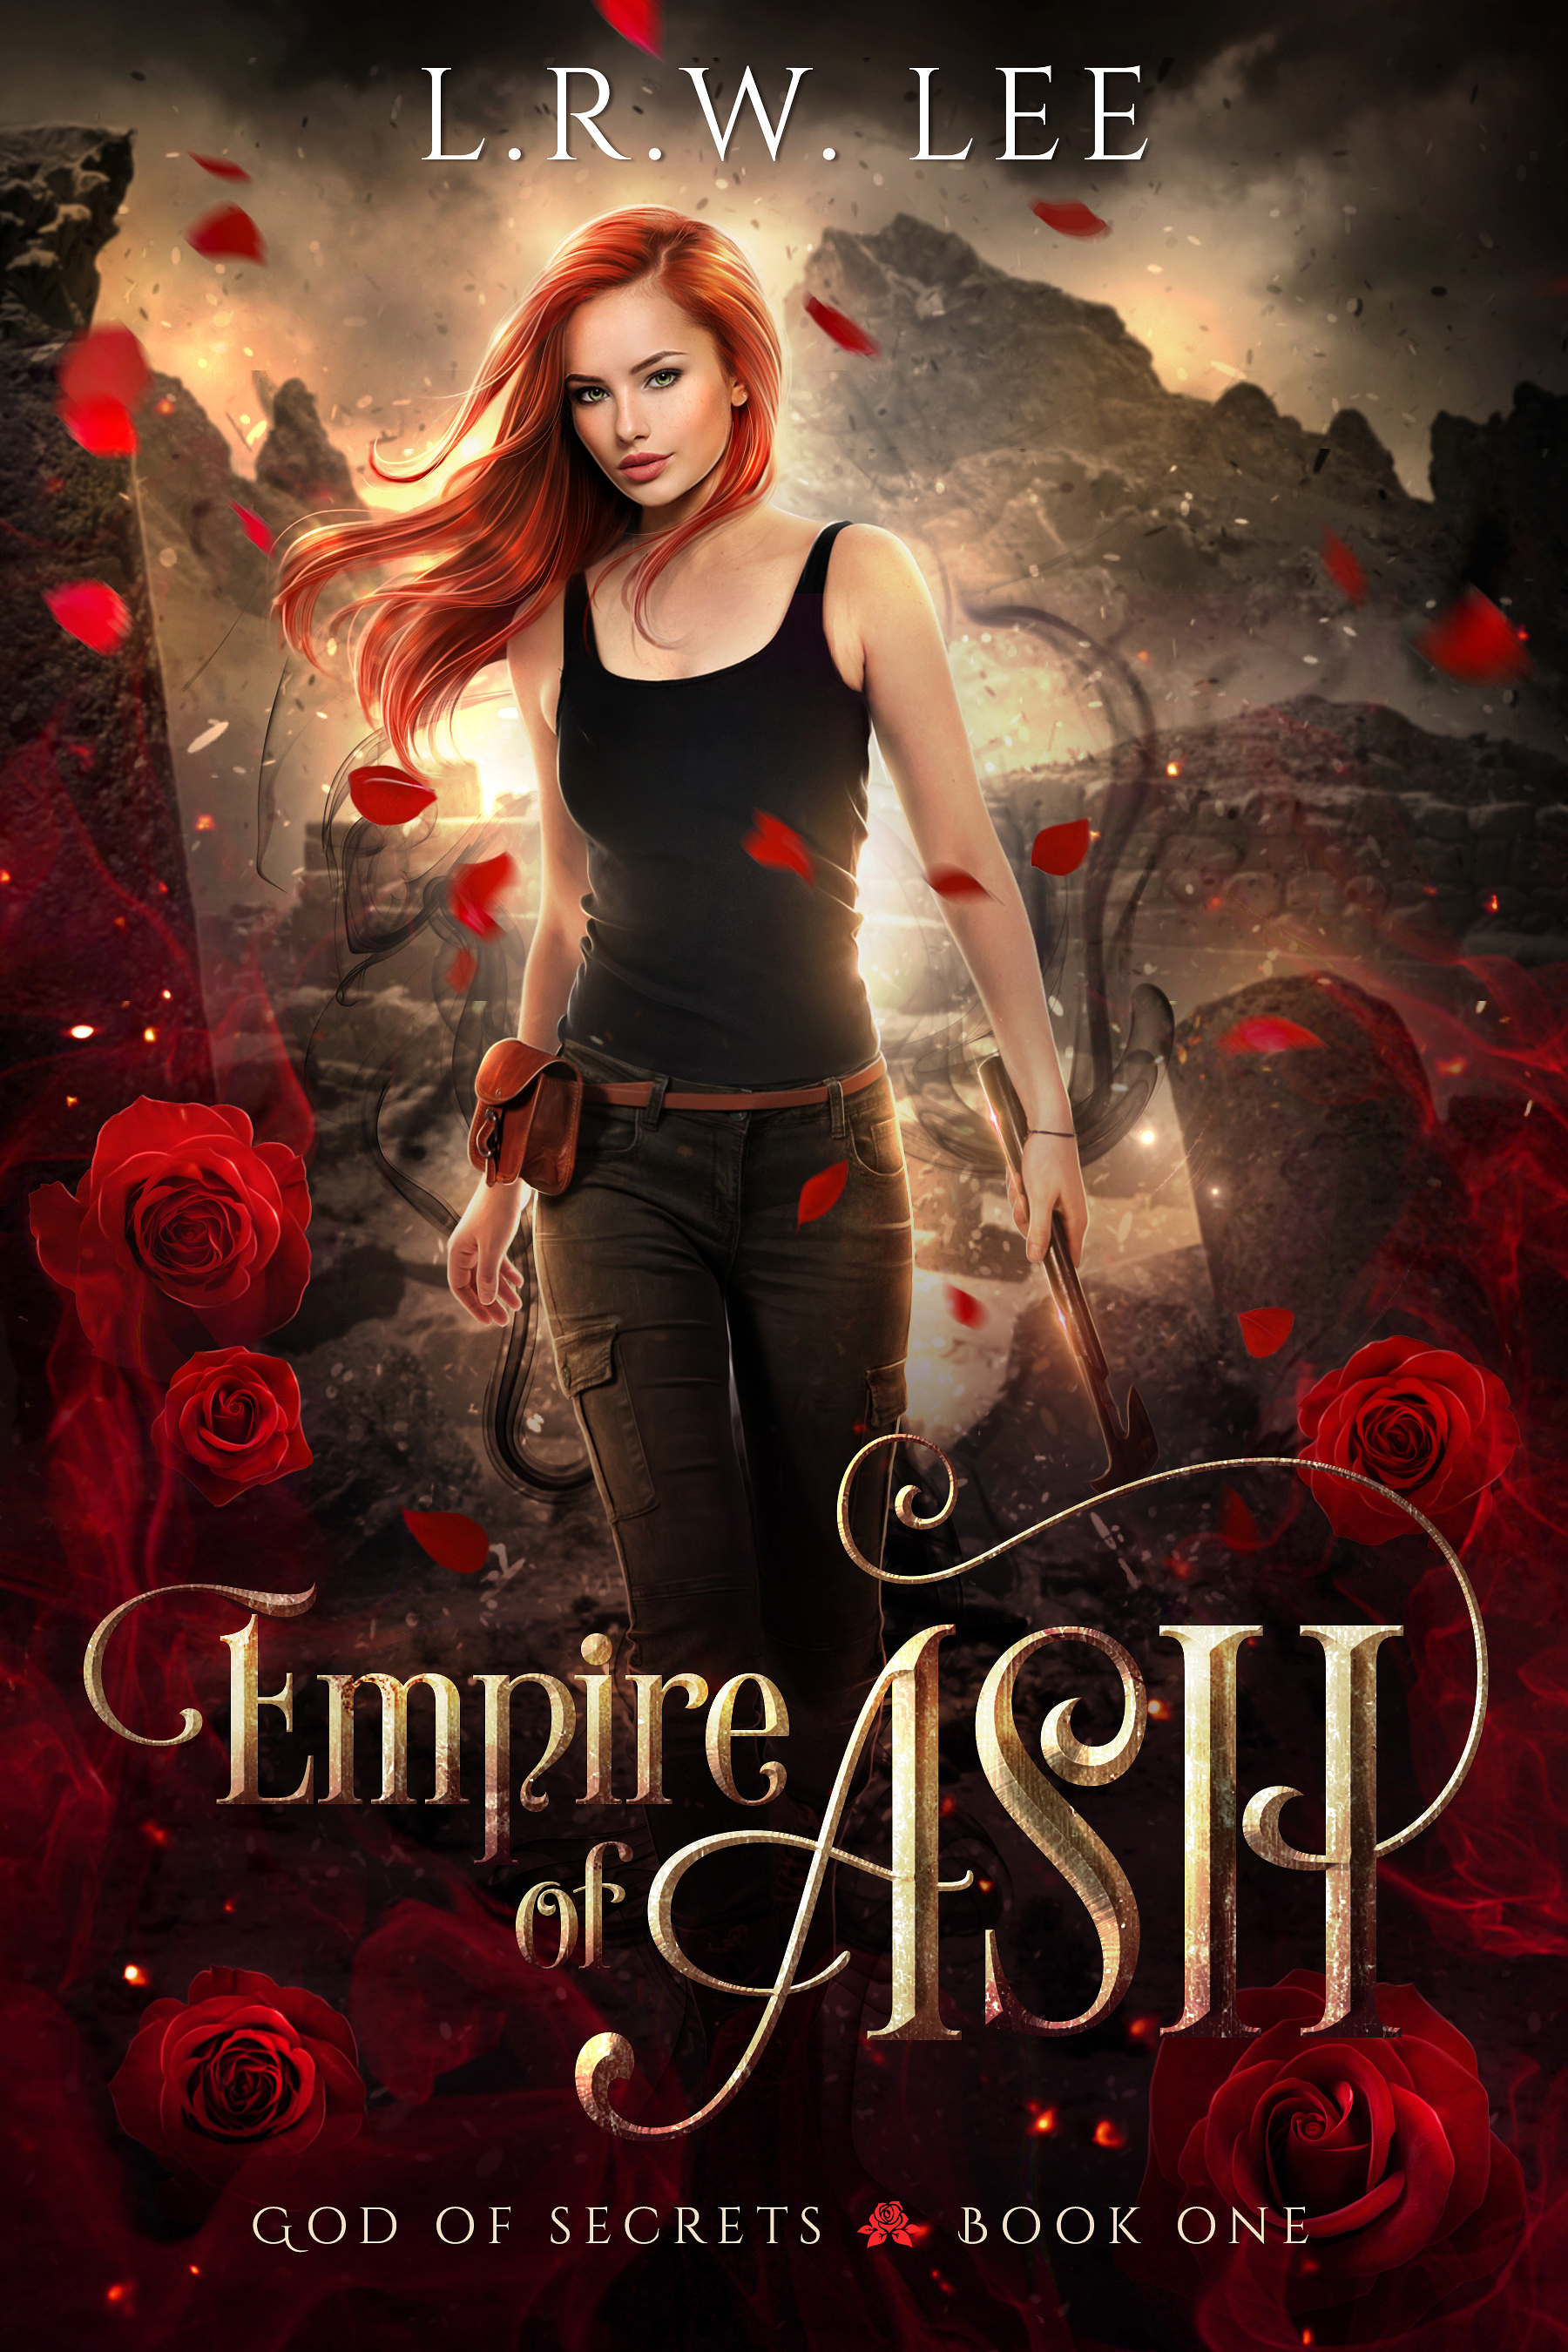 Autographed Paperback of Empire of Ash, Book One in God of Secrets series